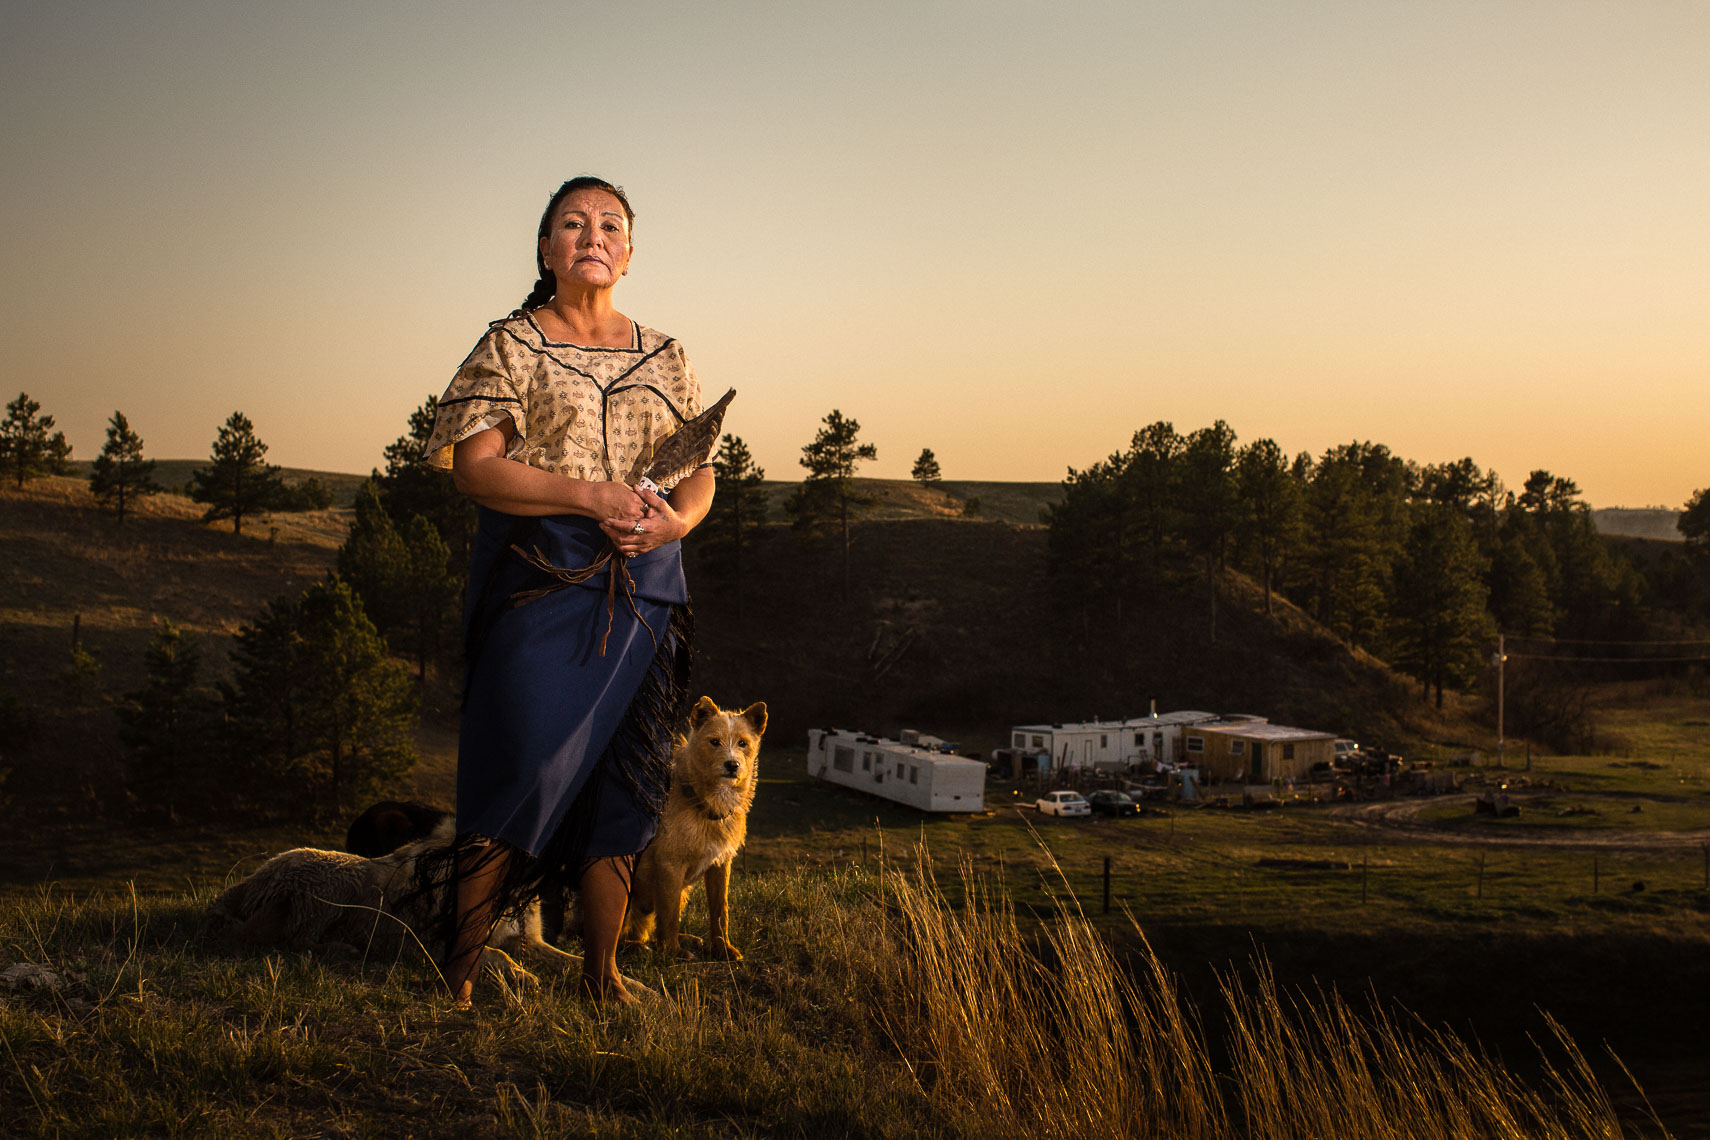 patrick_cavan_brown_arlene_pine_ridge_indian_reservation-4796